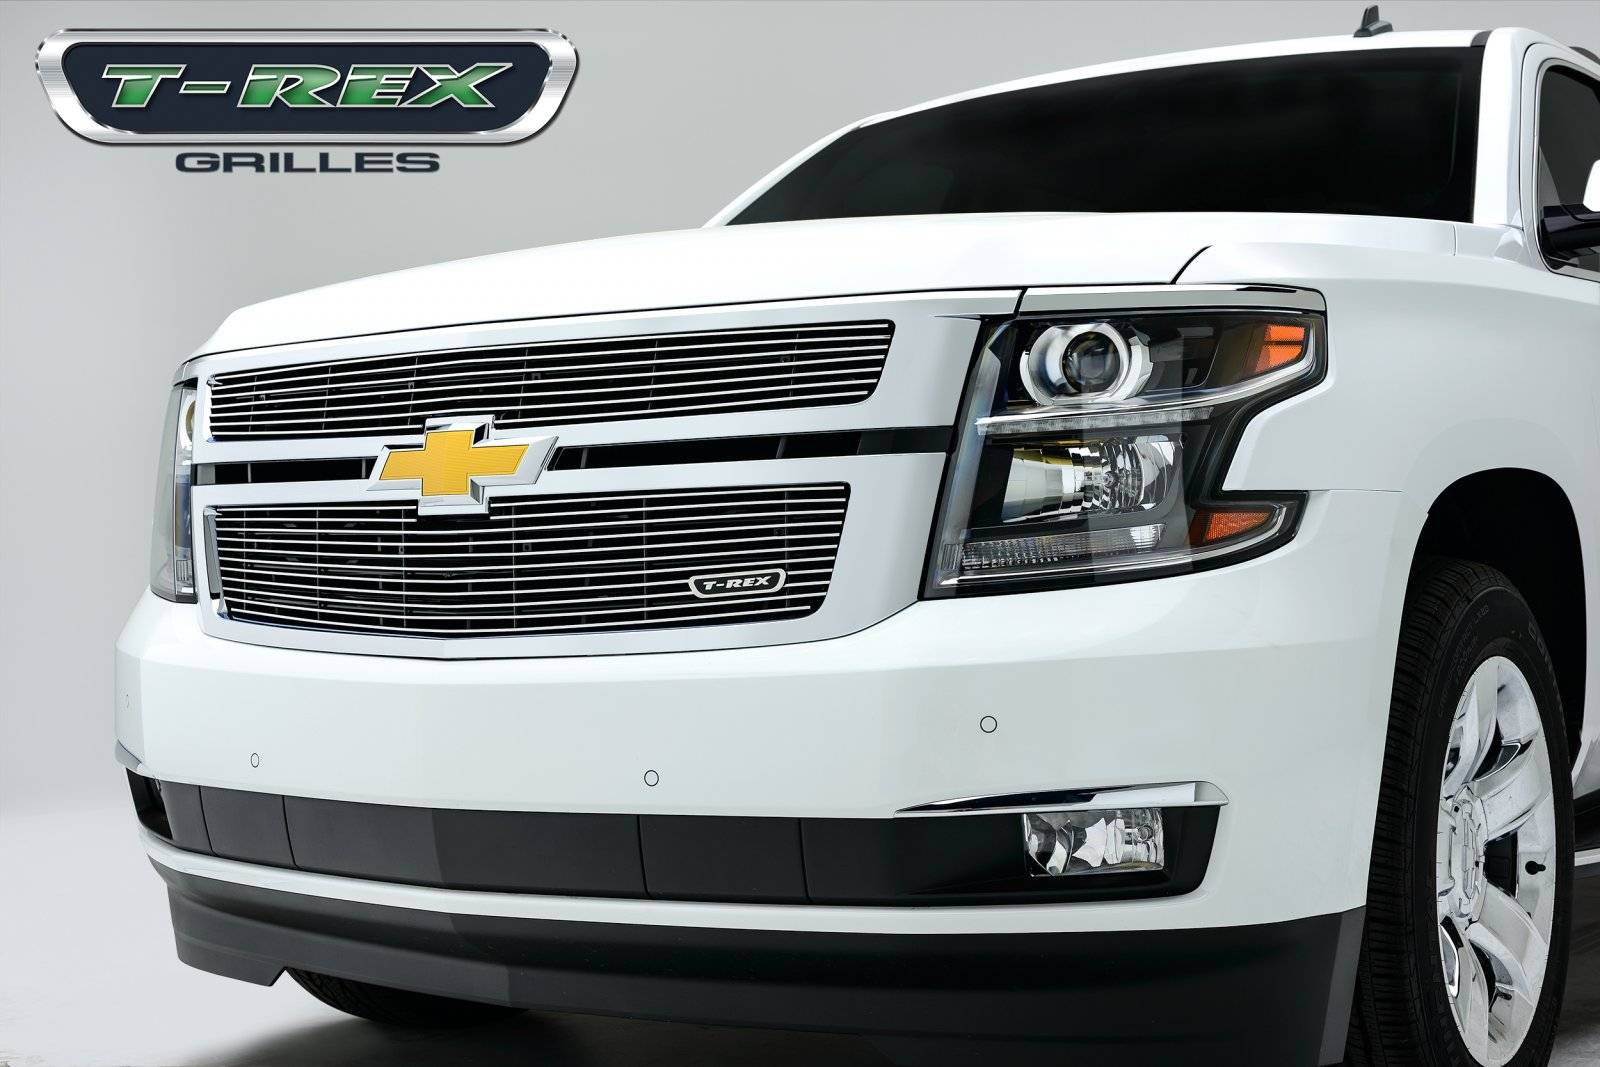 T-REX Grilles - Chevrolet Suburban, Tahoe Billet Grille Overlay/Bolt On - 2 Pc - Pt # 21055